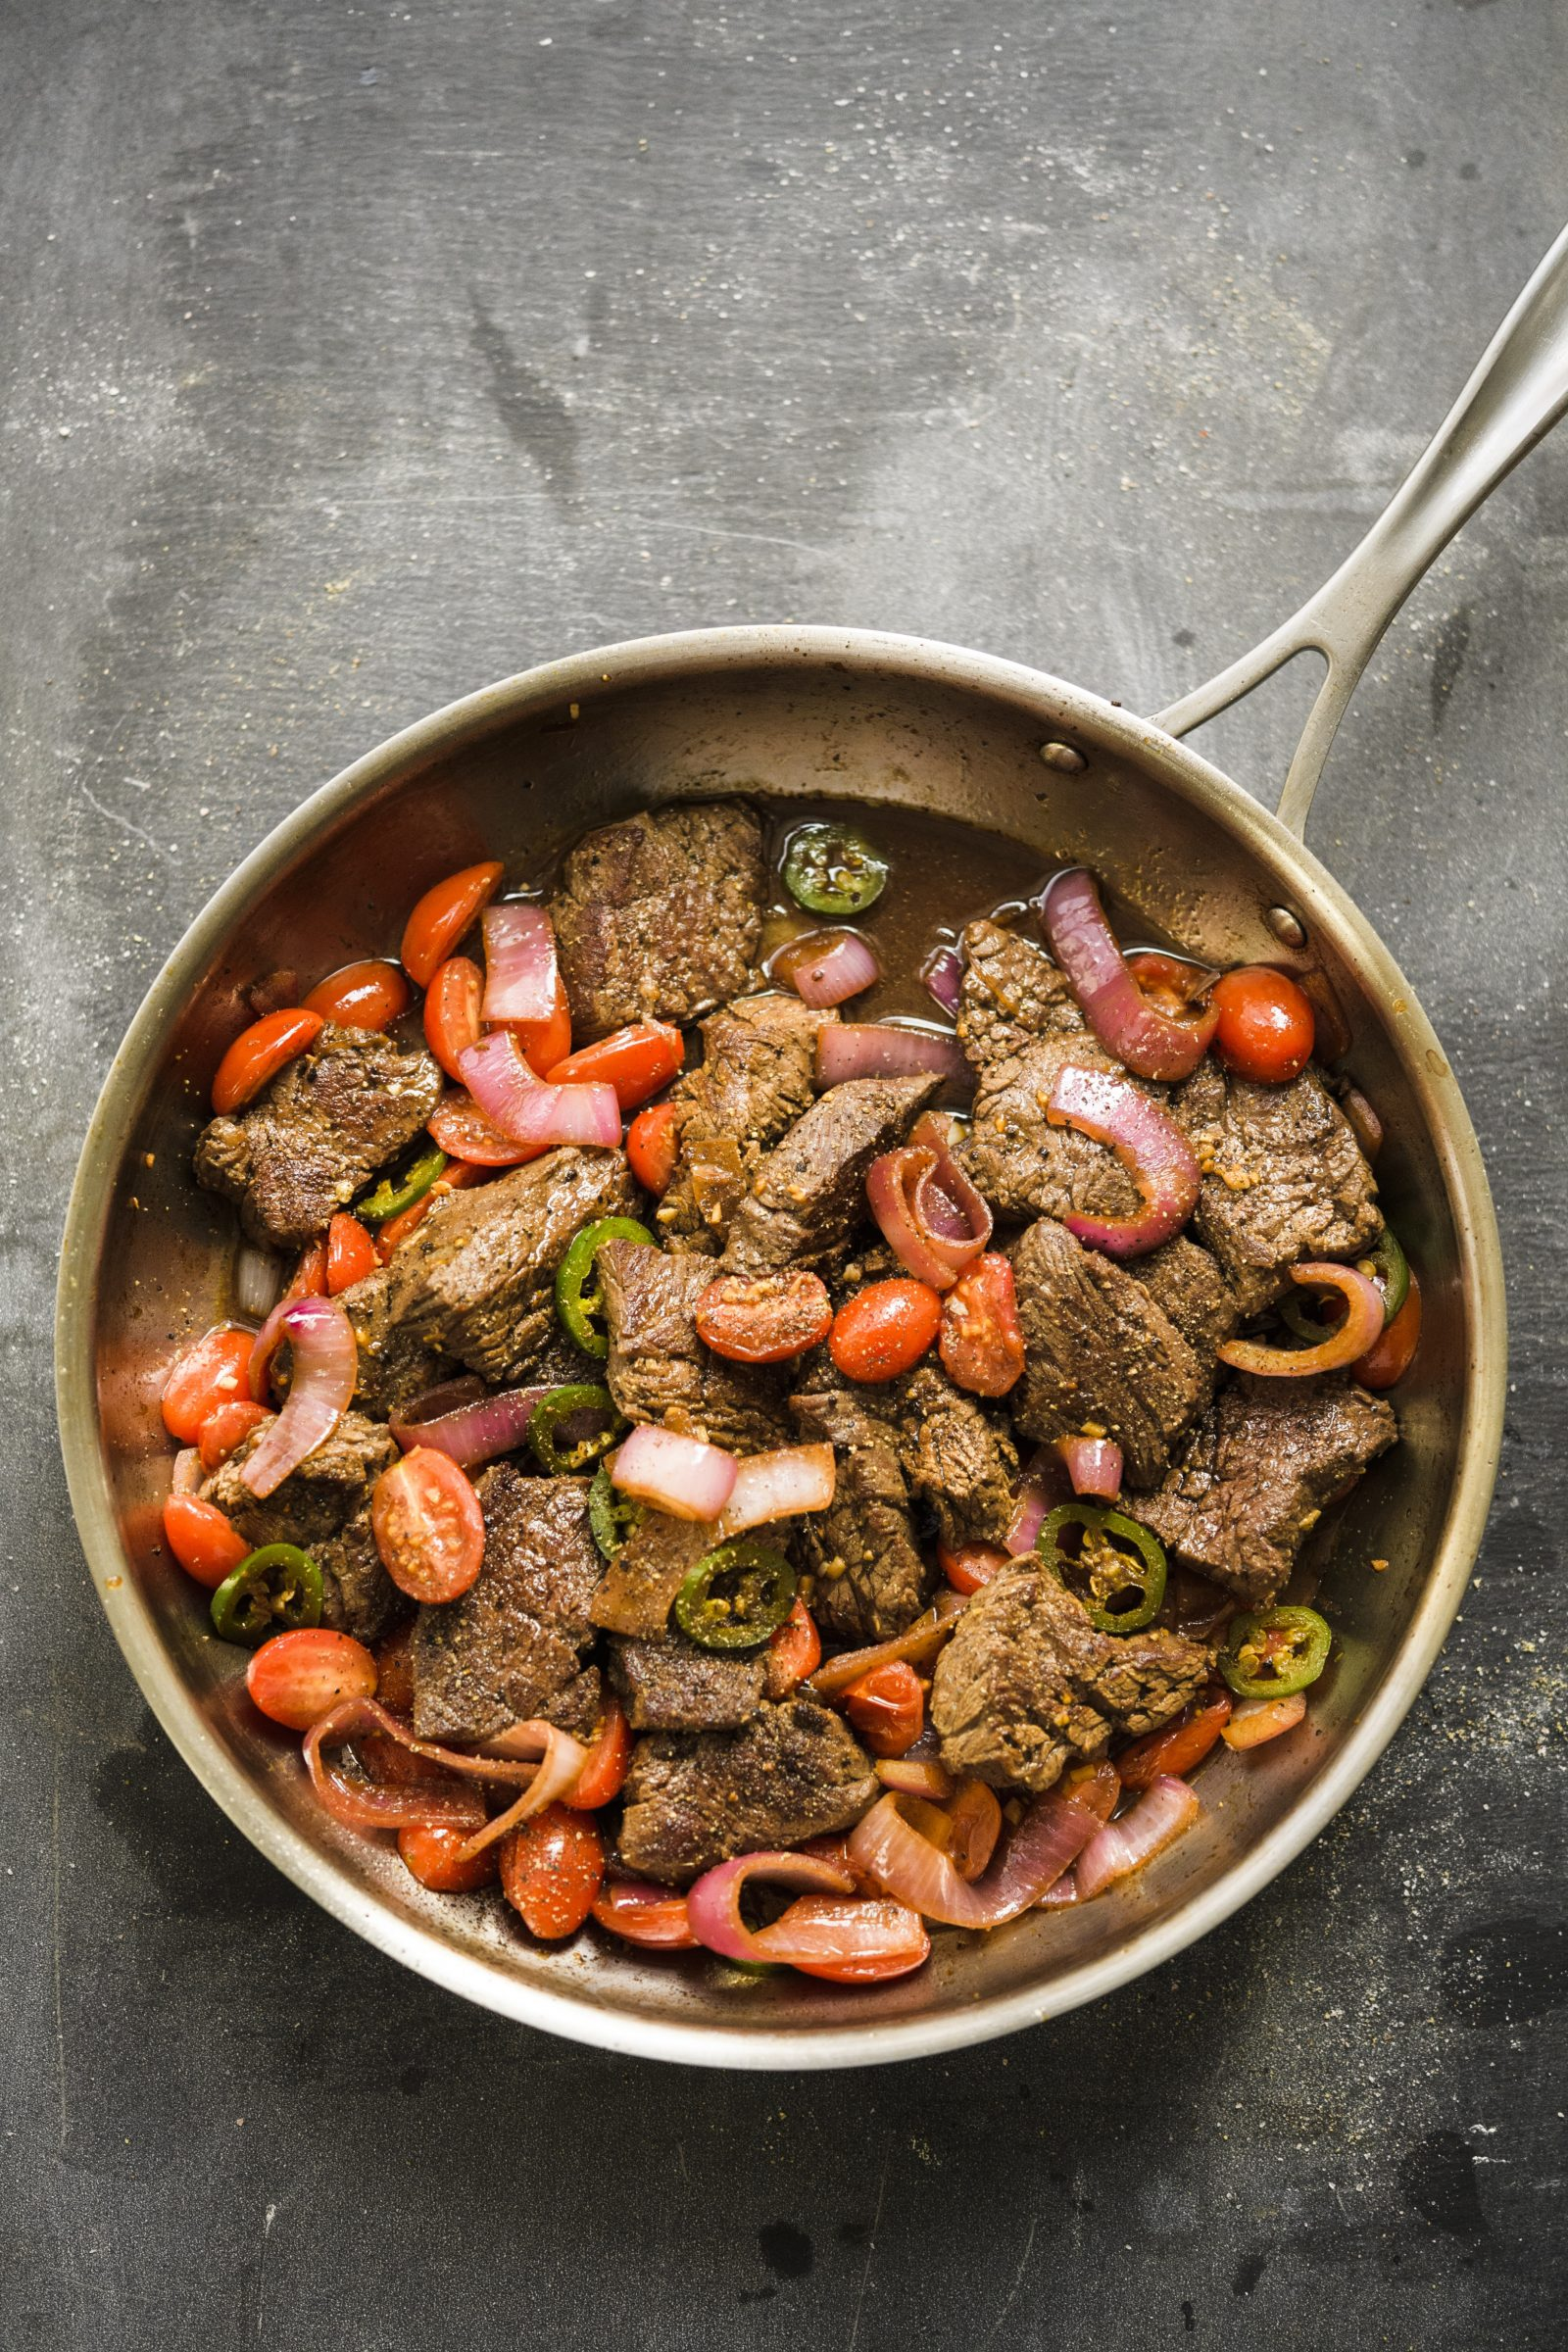 Peruvian Steak Stir-Fry with Onions and Tomatoes (Lomo Saltado)